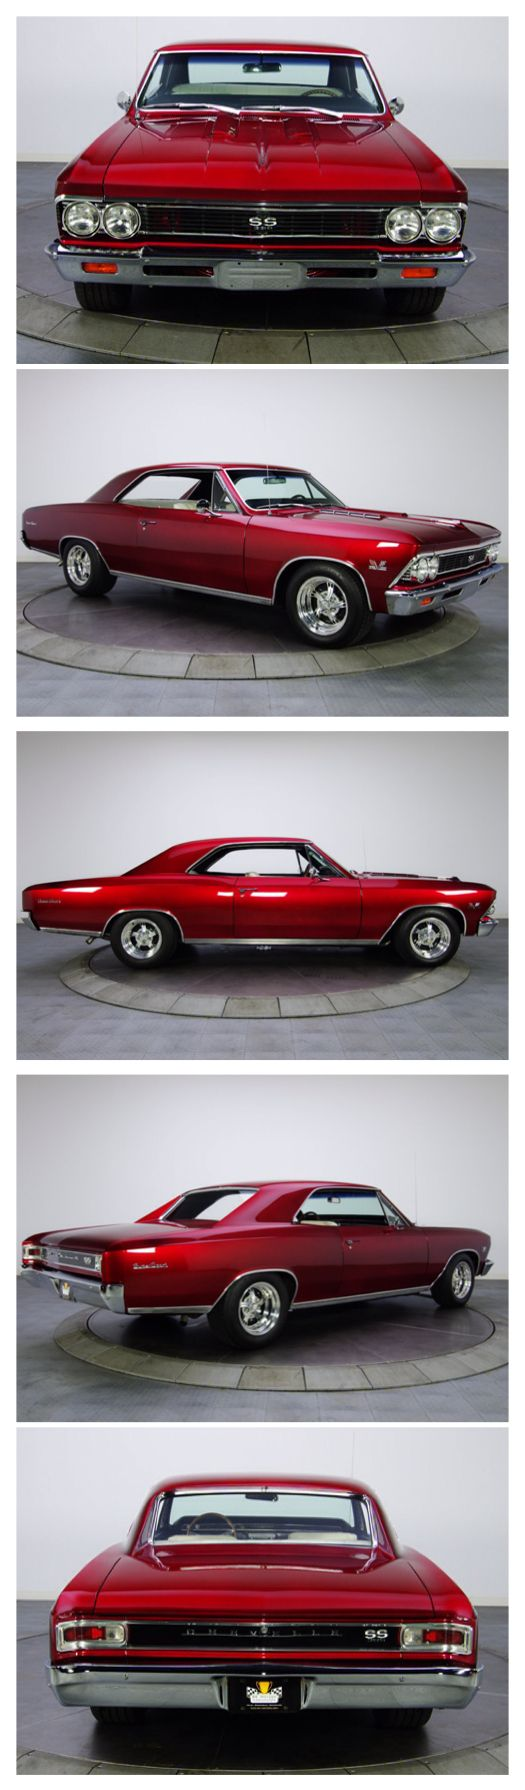 1966 Chevy Chevelle SS   Brought to you by House of Insurance in